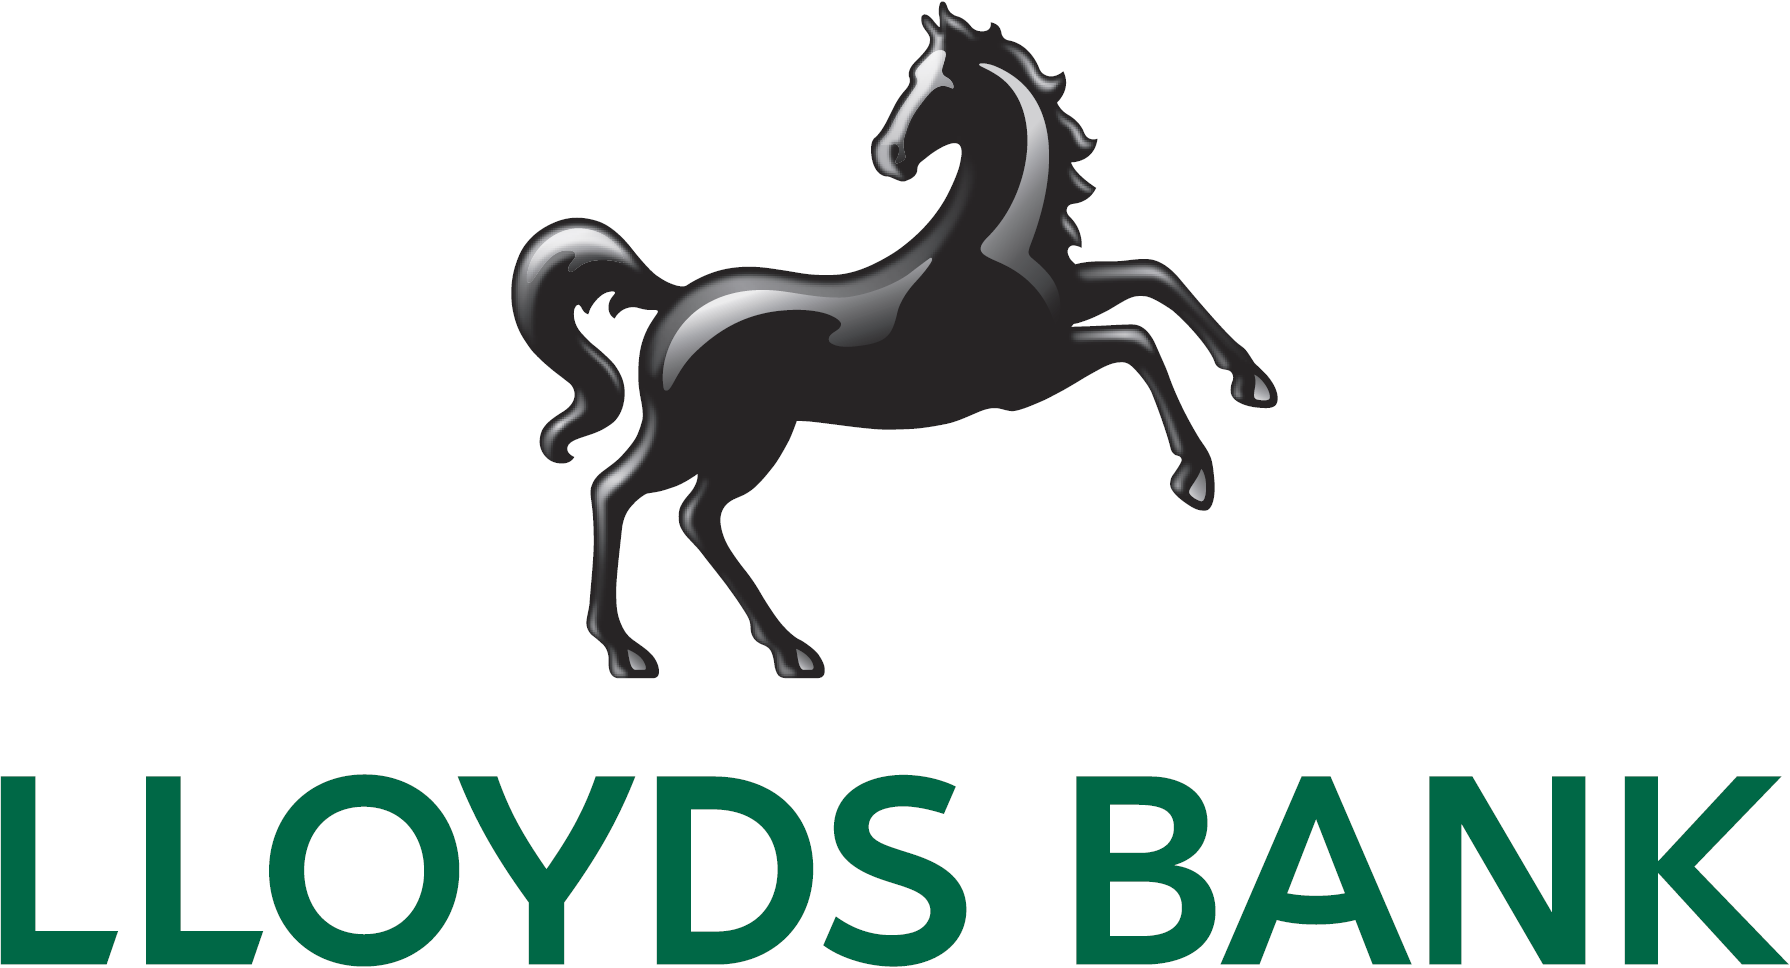 Lloyds Bank Loans logo